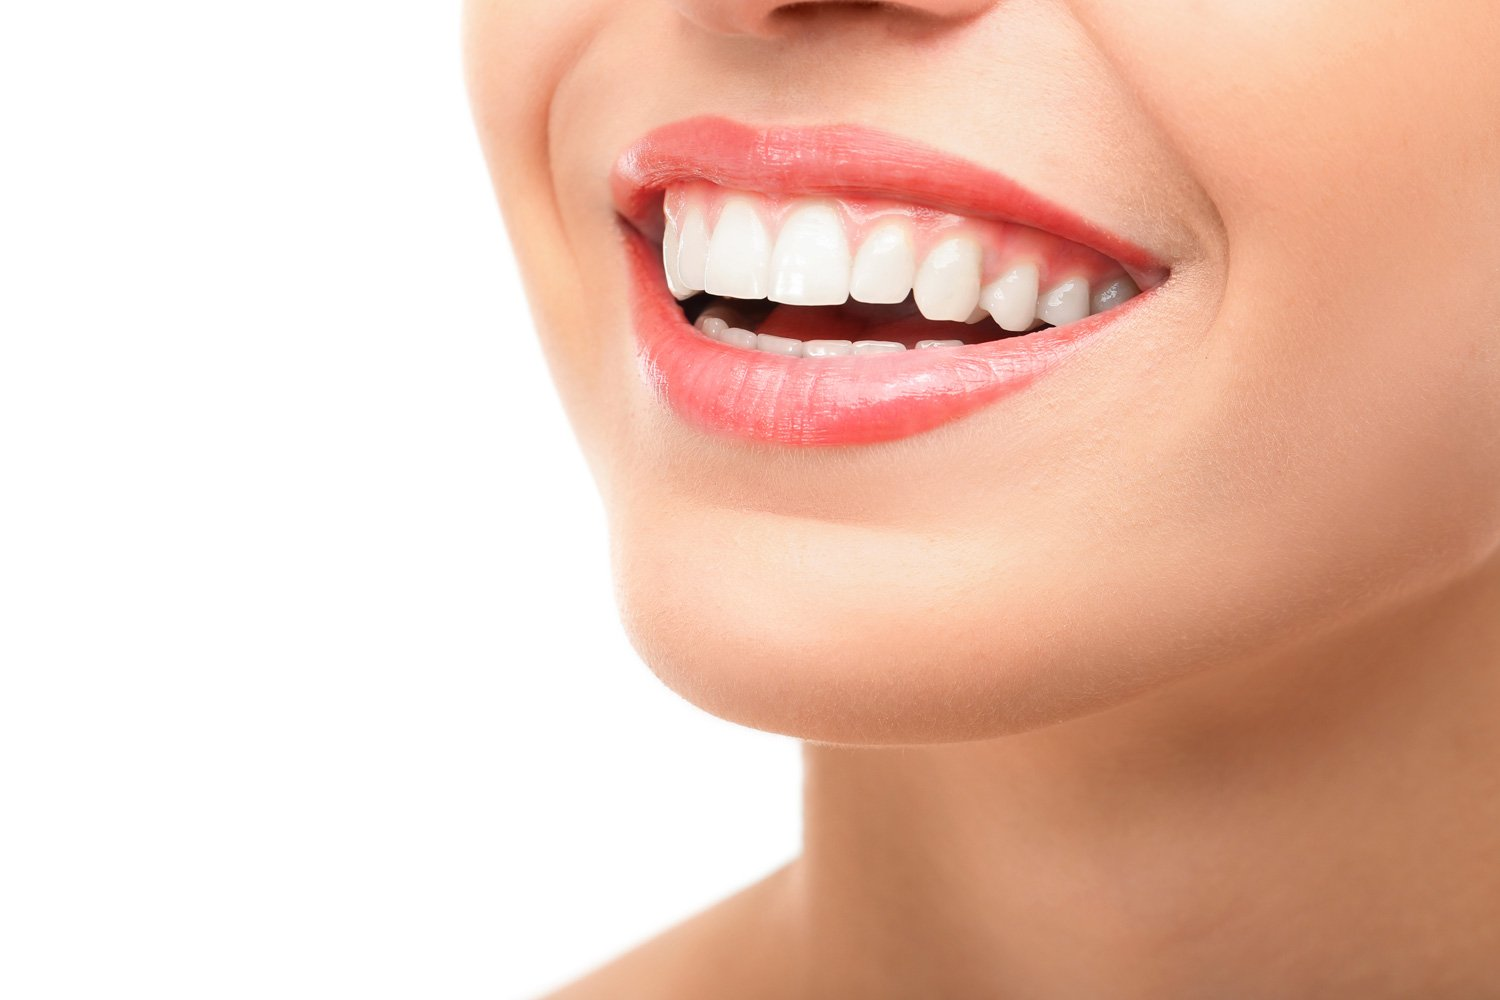 7 Simple Ways To Improve Your Smile